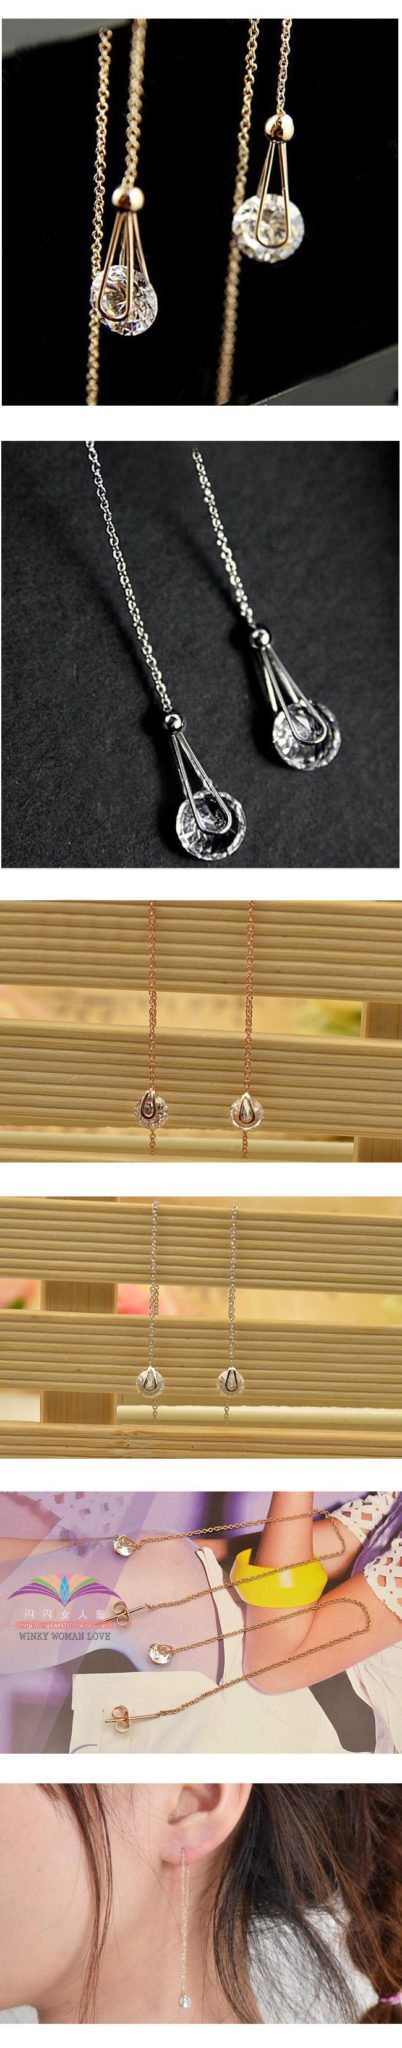 11569-785839468499bd84c8a5db775aac2f98 Italina Long Cubic Zirconia Earrings Chain With Push Back Closure